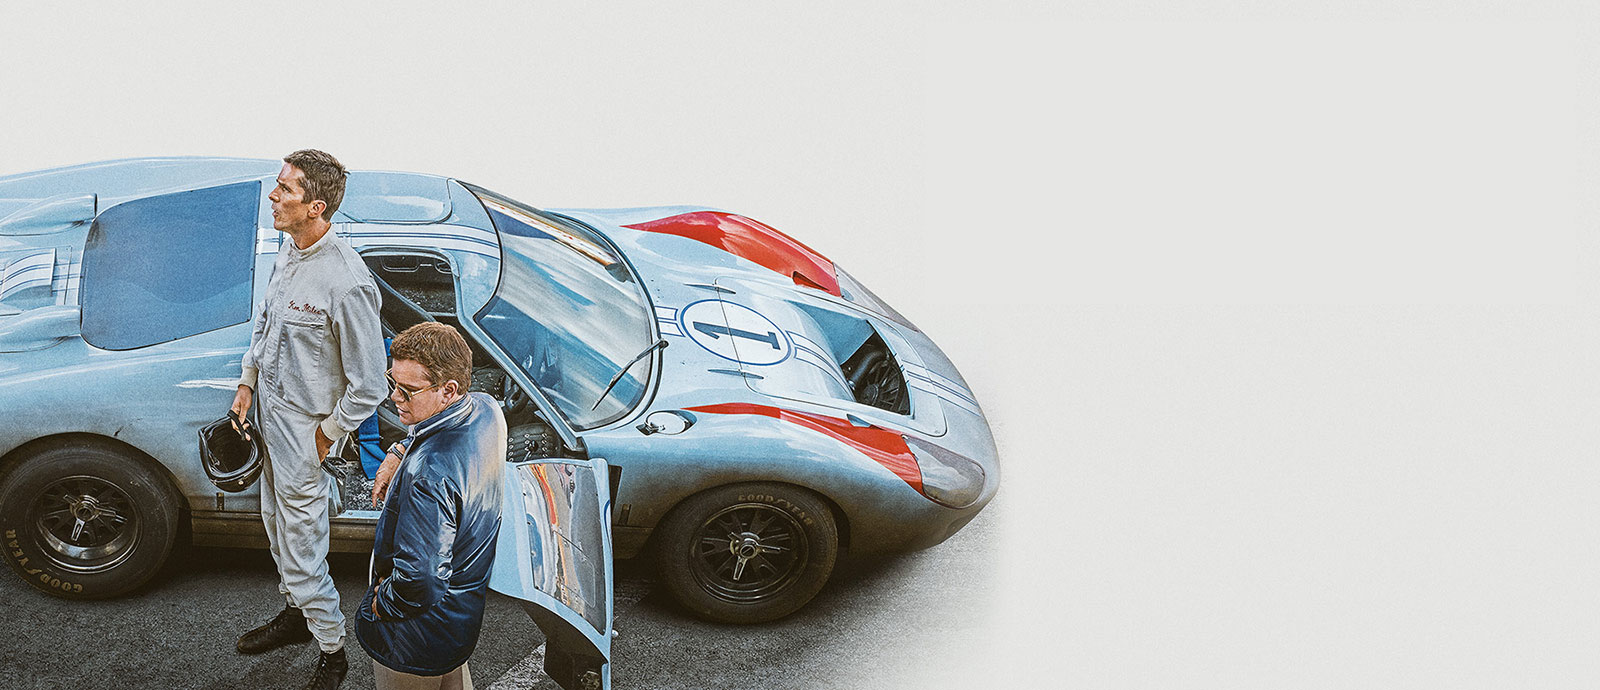 Ford Vs. Ferrari, And The Historic Le Mans Race Of 1966